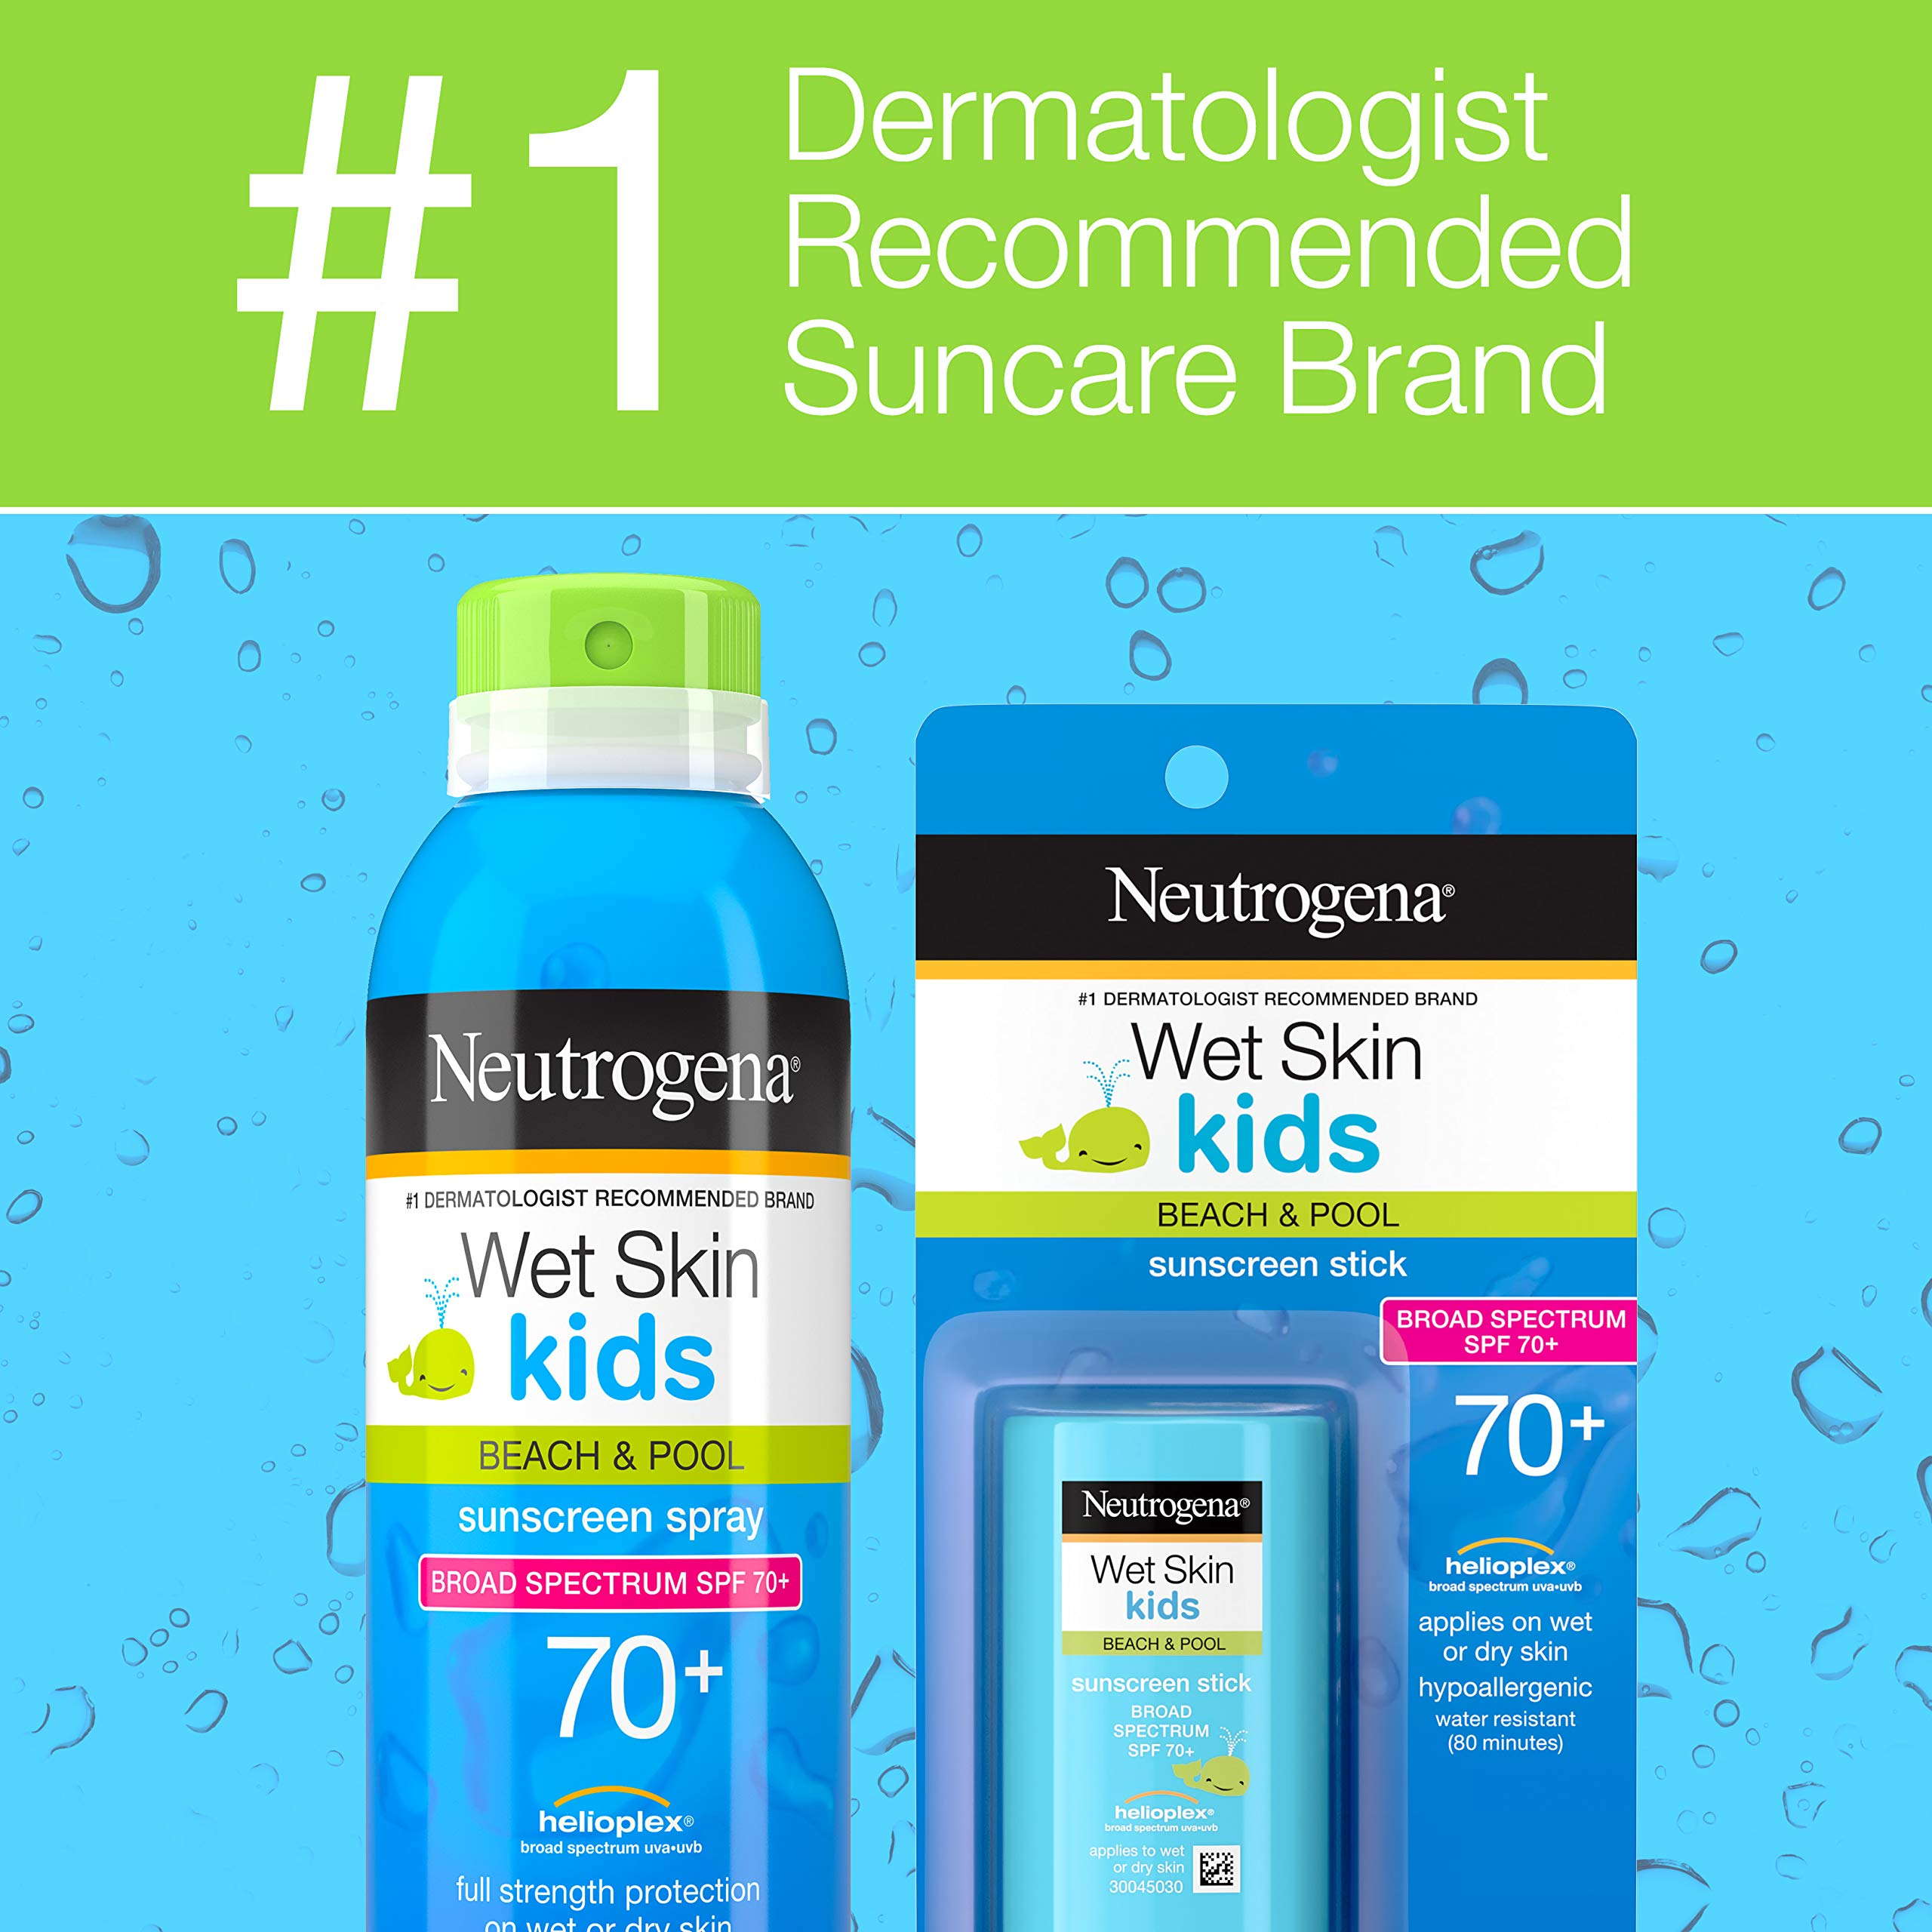 Neutrogena Wet Skin Kids Water Resistant Sunscreen Stick for Face and Body, Broad Spectrum SPF 70, 0.47 oz